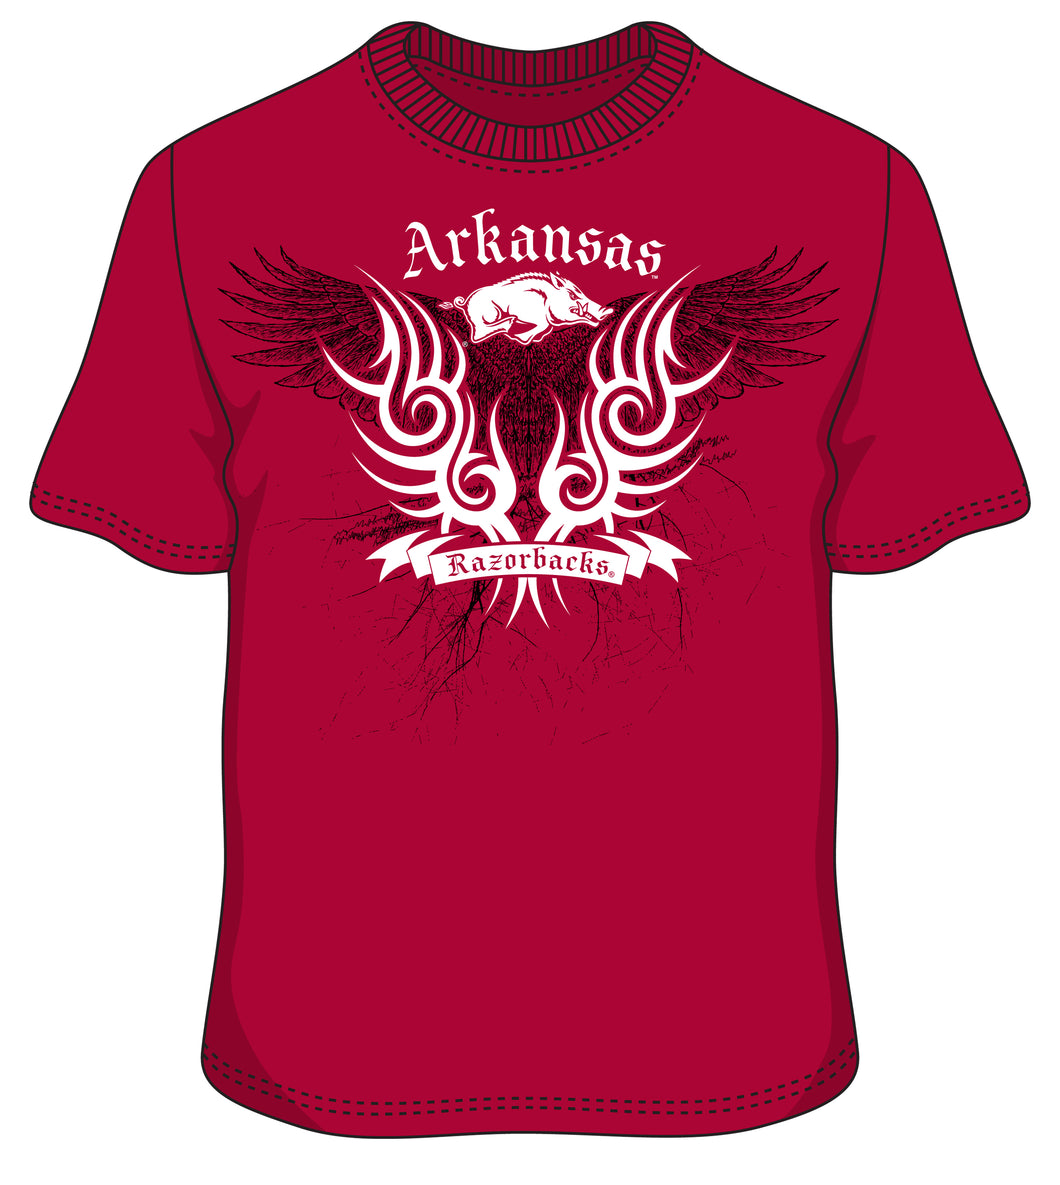 Arkansas Valiant Wings t shirt